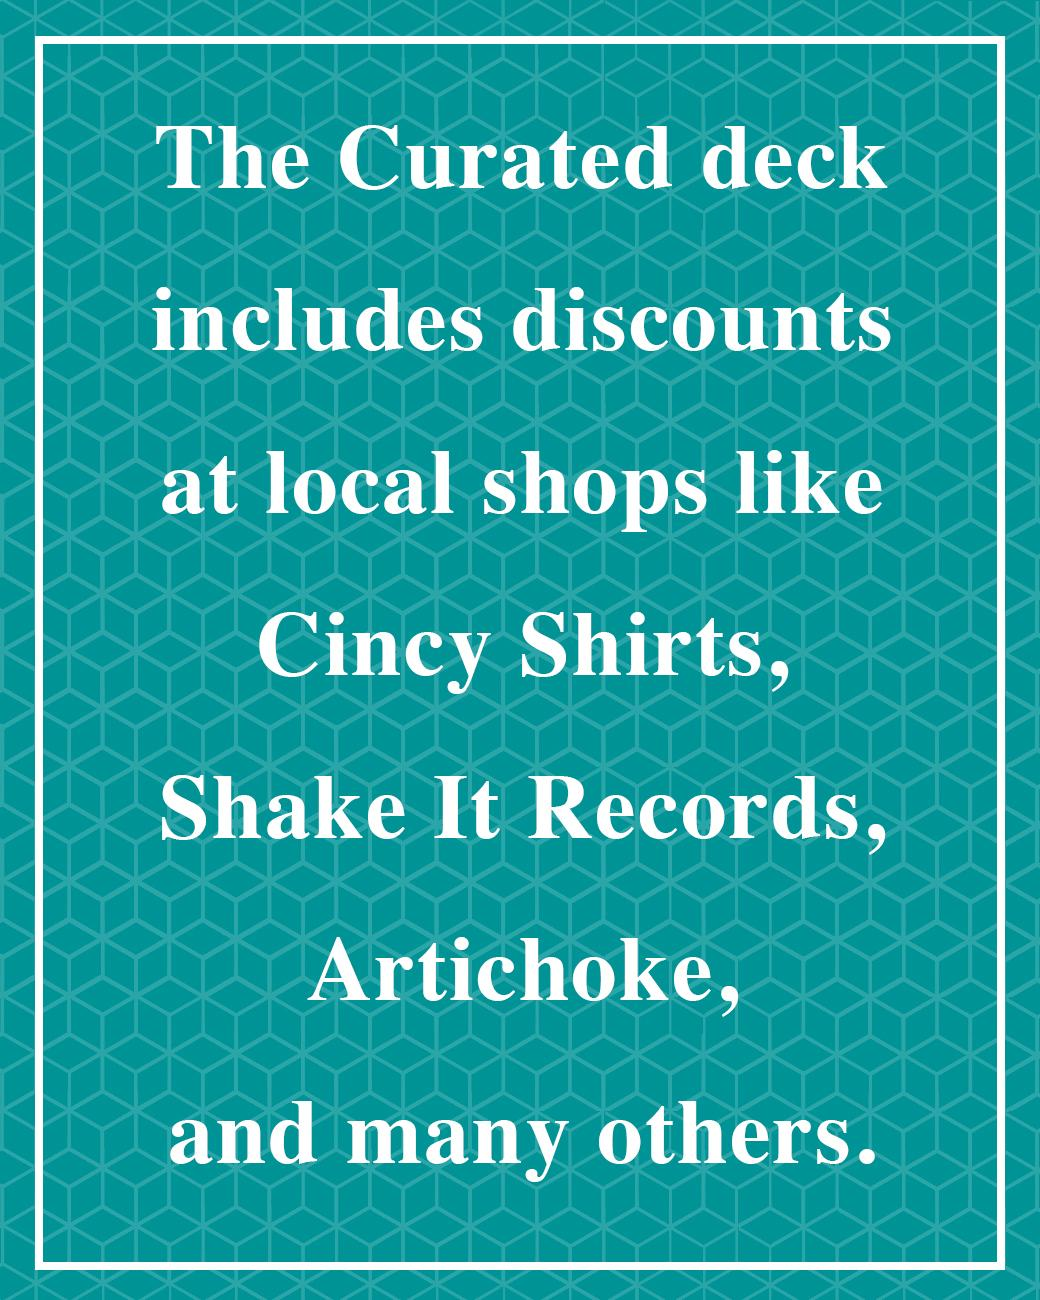 A lot of local businesses have signed up to offer discounts to those who own a deck.